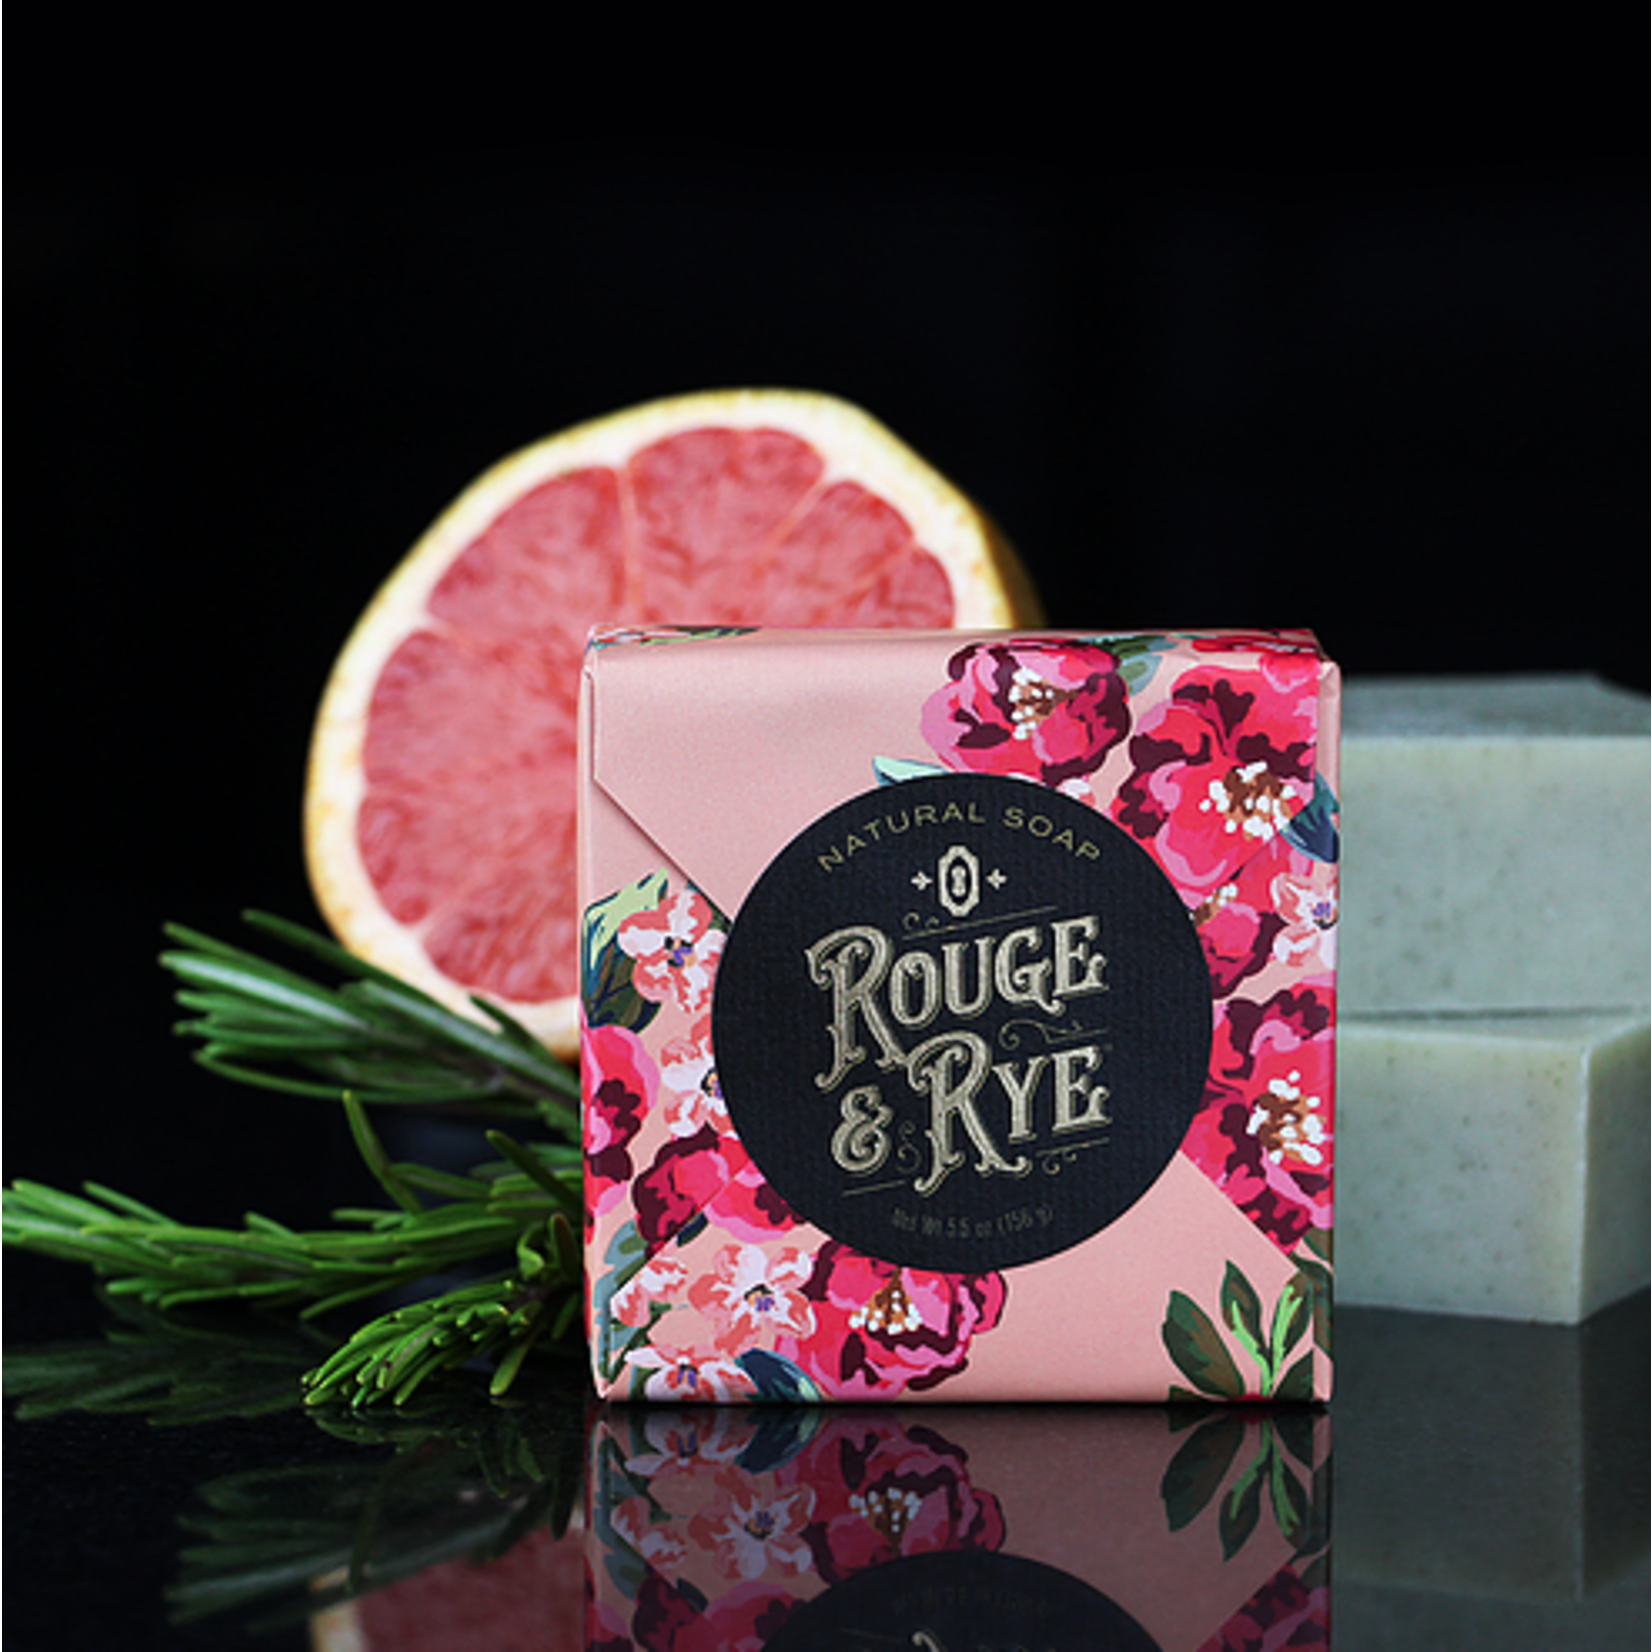 Rouge & Rye Face + Body Bar Soap